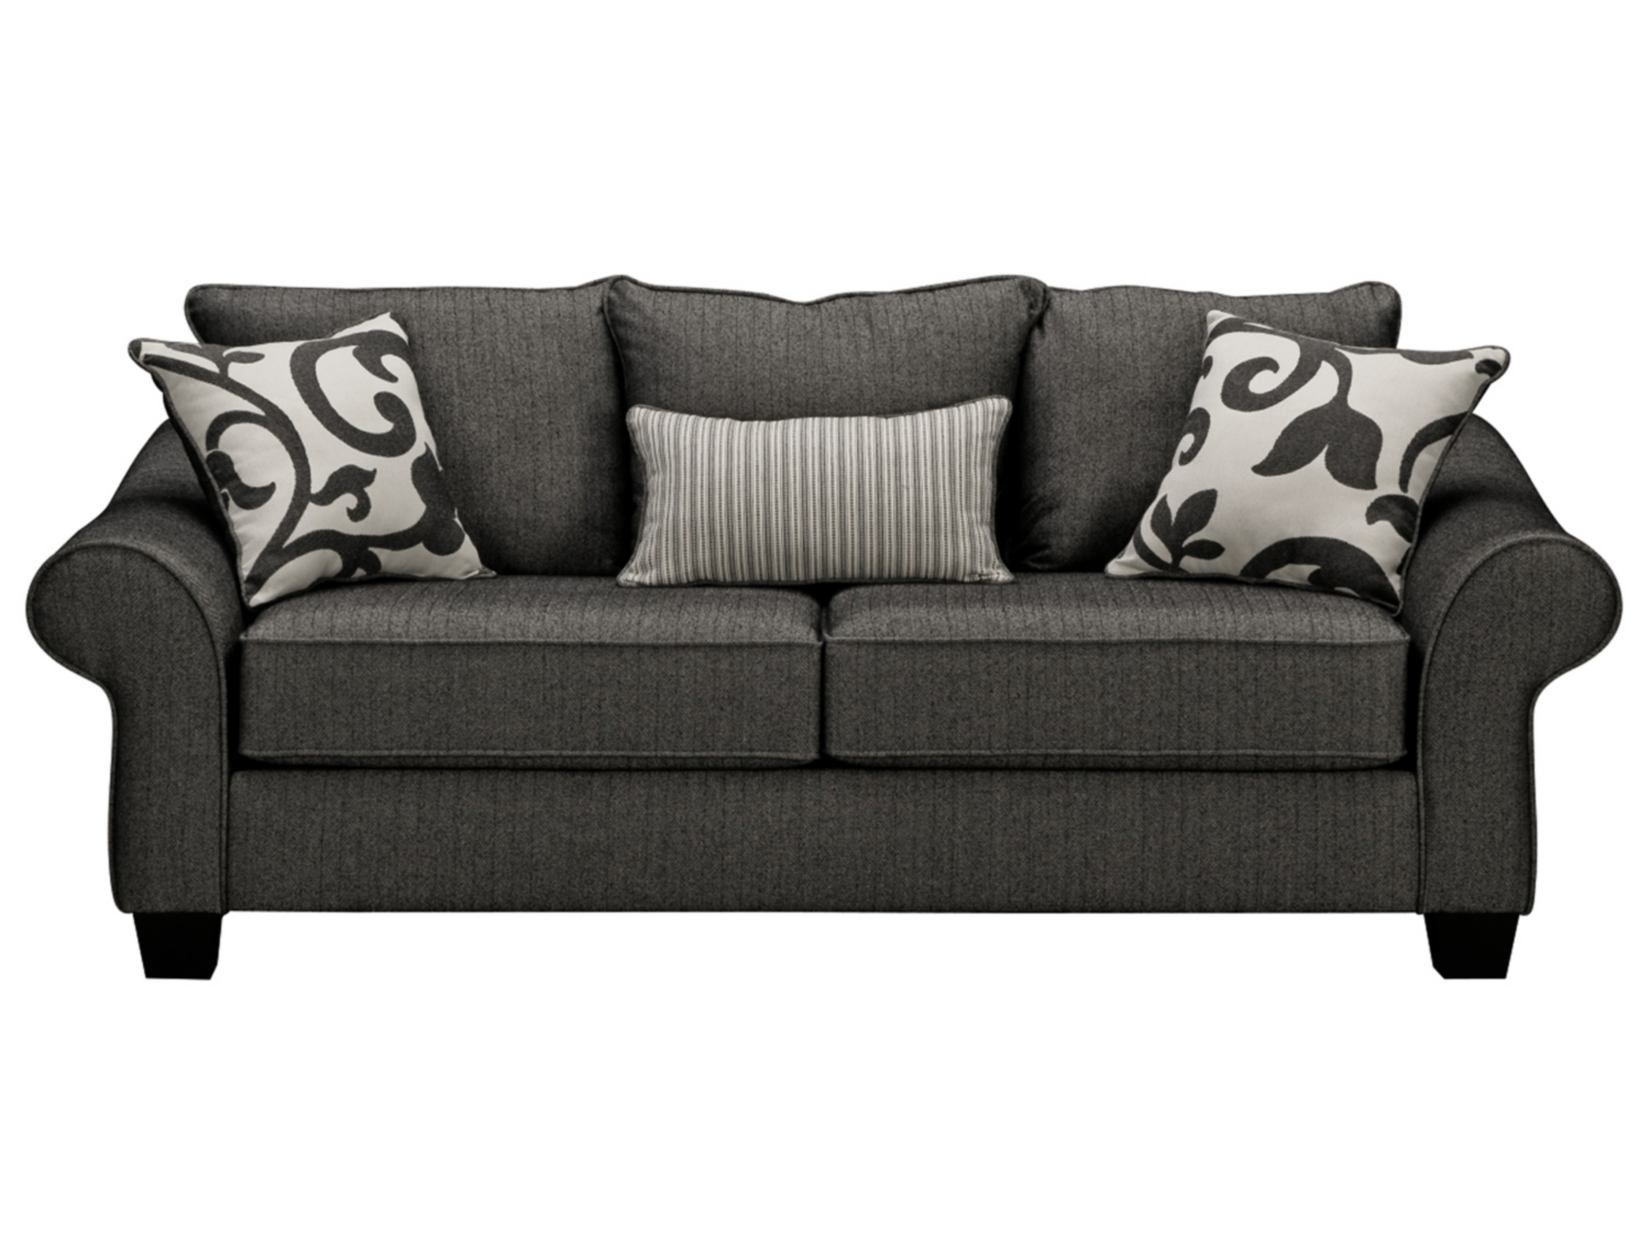 tell city chairs pattern 4222 bailey chair for sale 499 colette grey sofa value furniture christmas